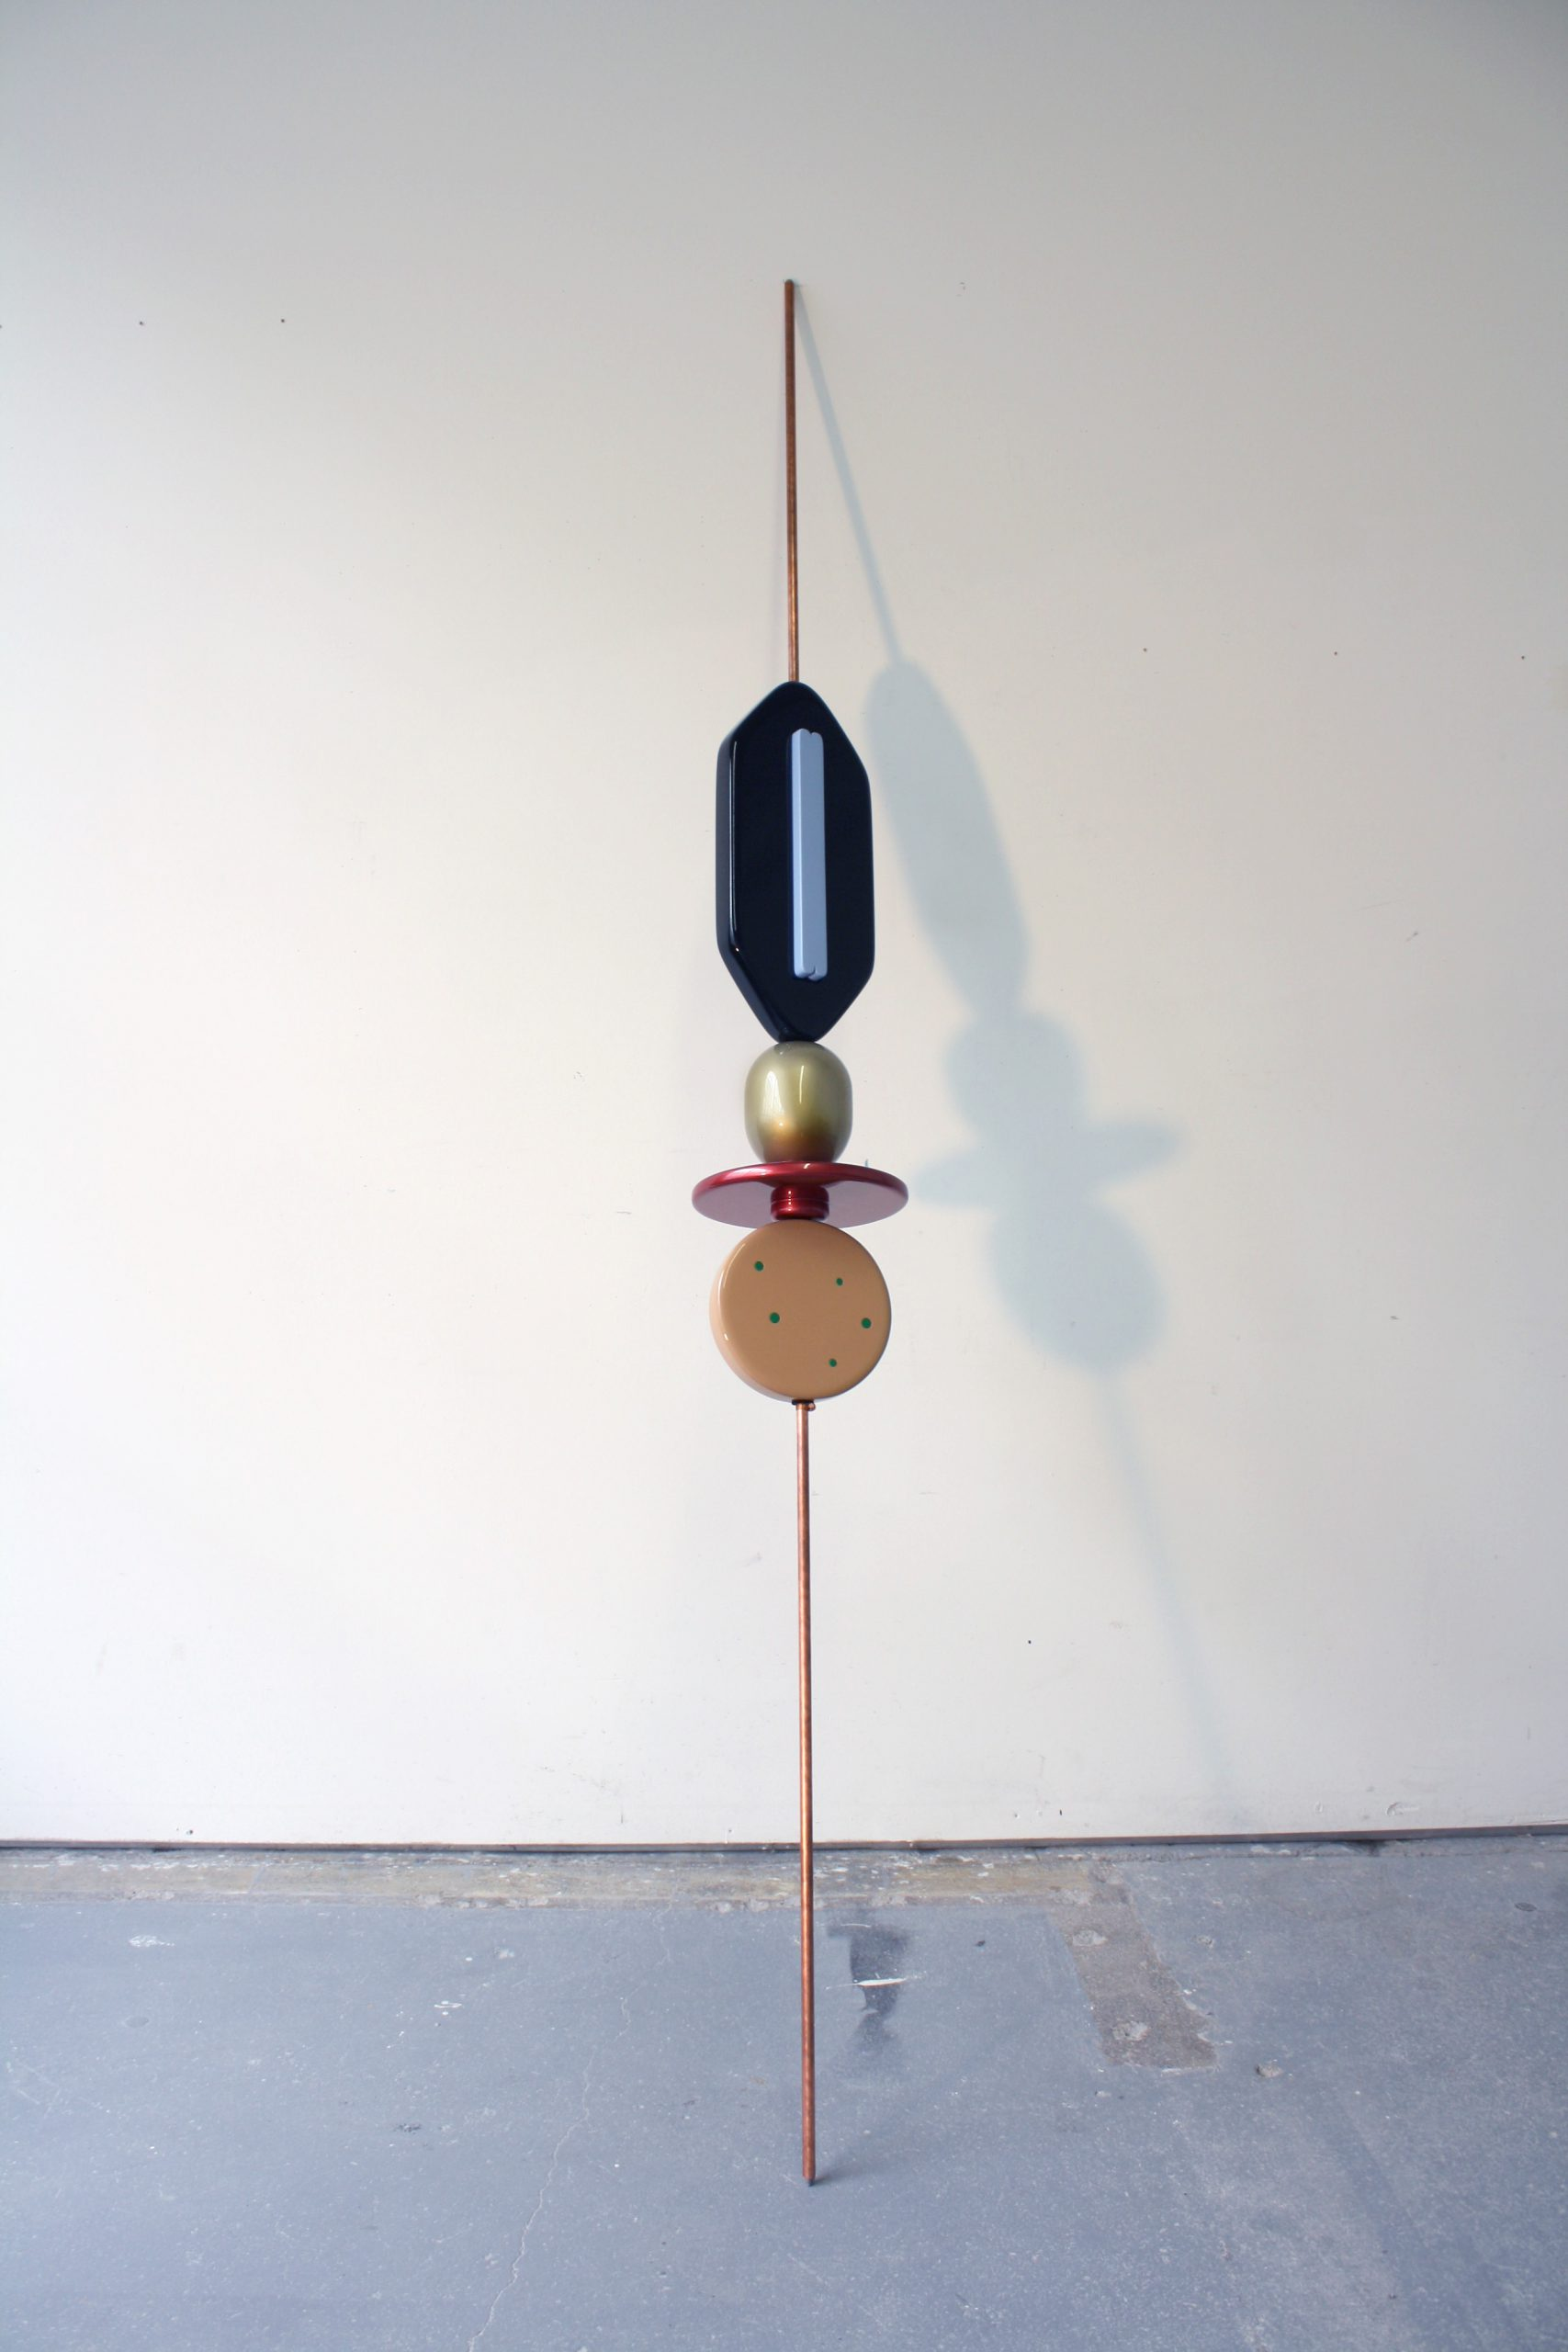 Reuven Israel, SBM3 (Stand By Me 3), 2012, Copper coated steel rod MDF and paints, 244 x 26.5 x 26.5 cm